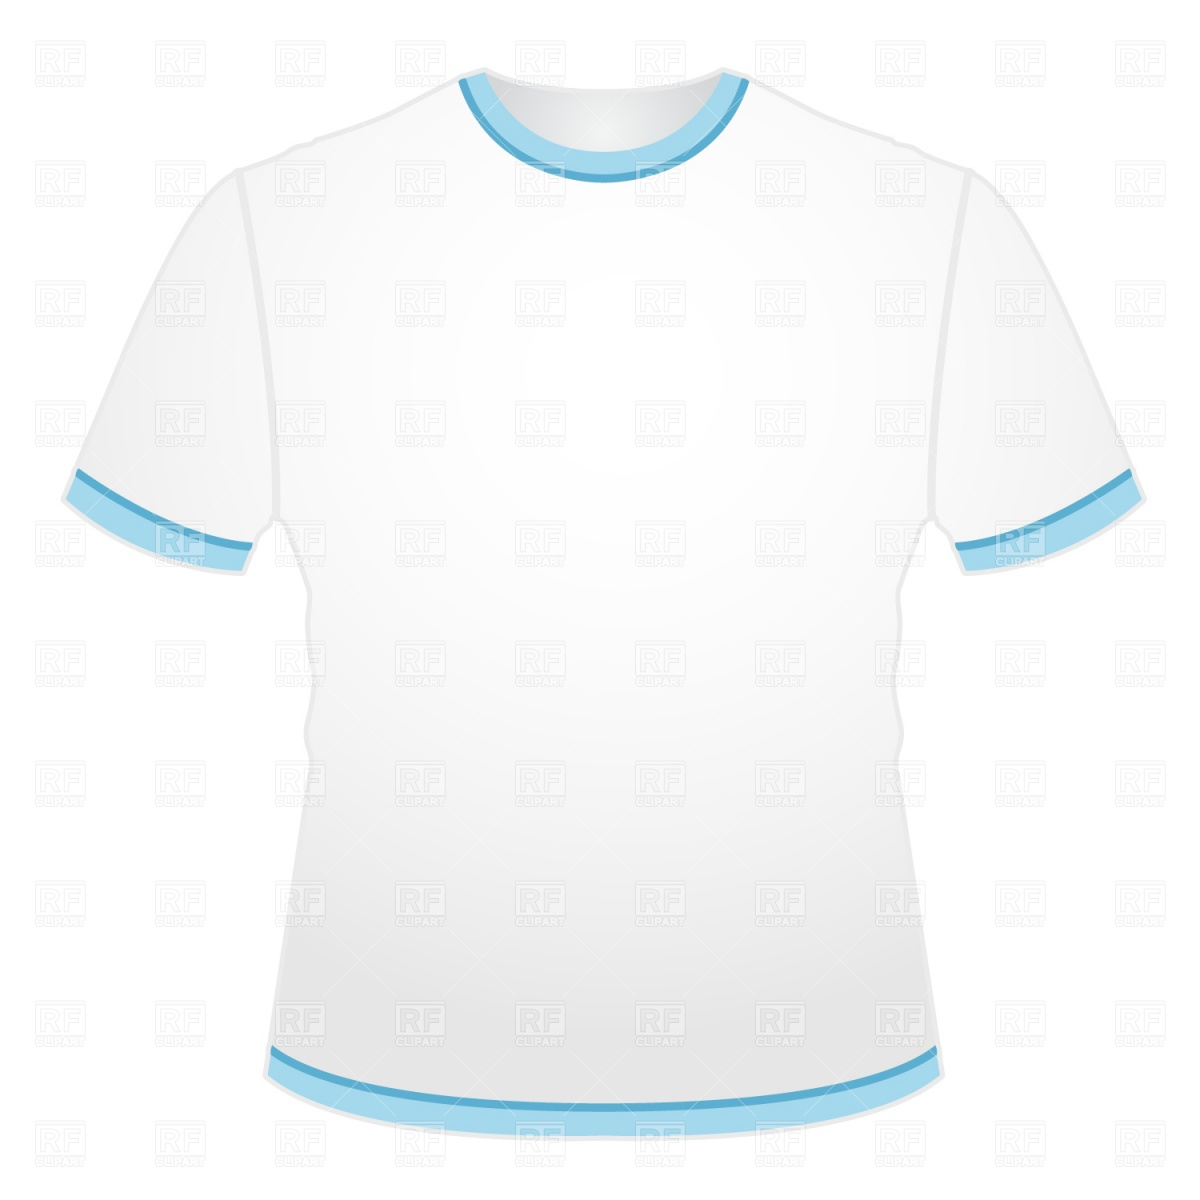 Blank T-Shirt Template Free Download